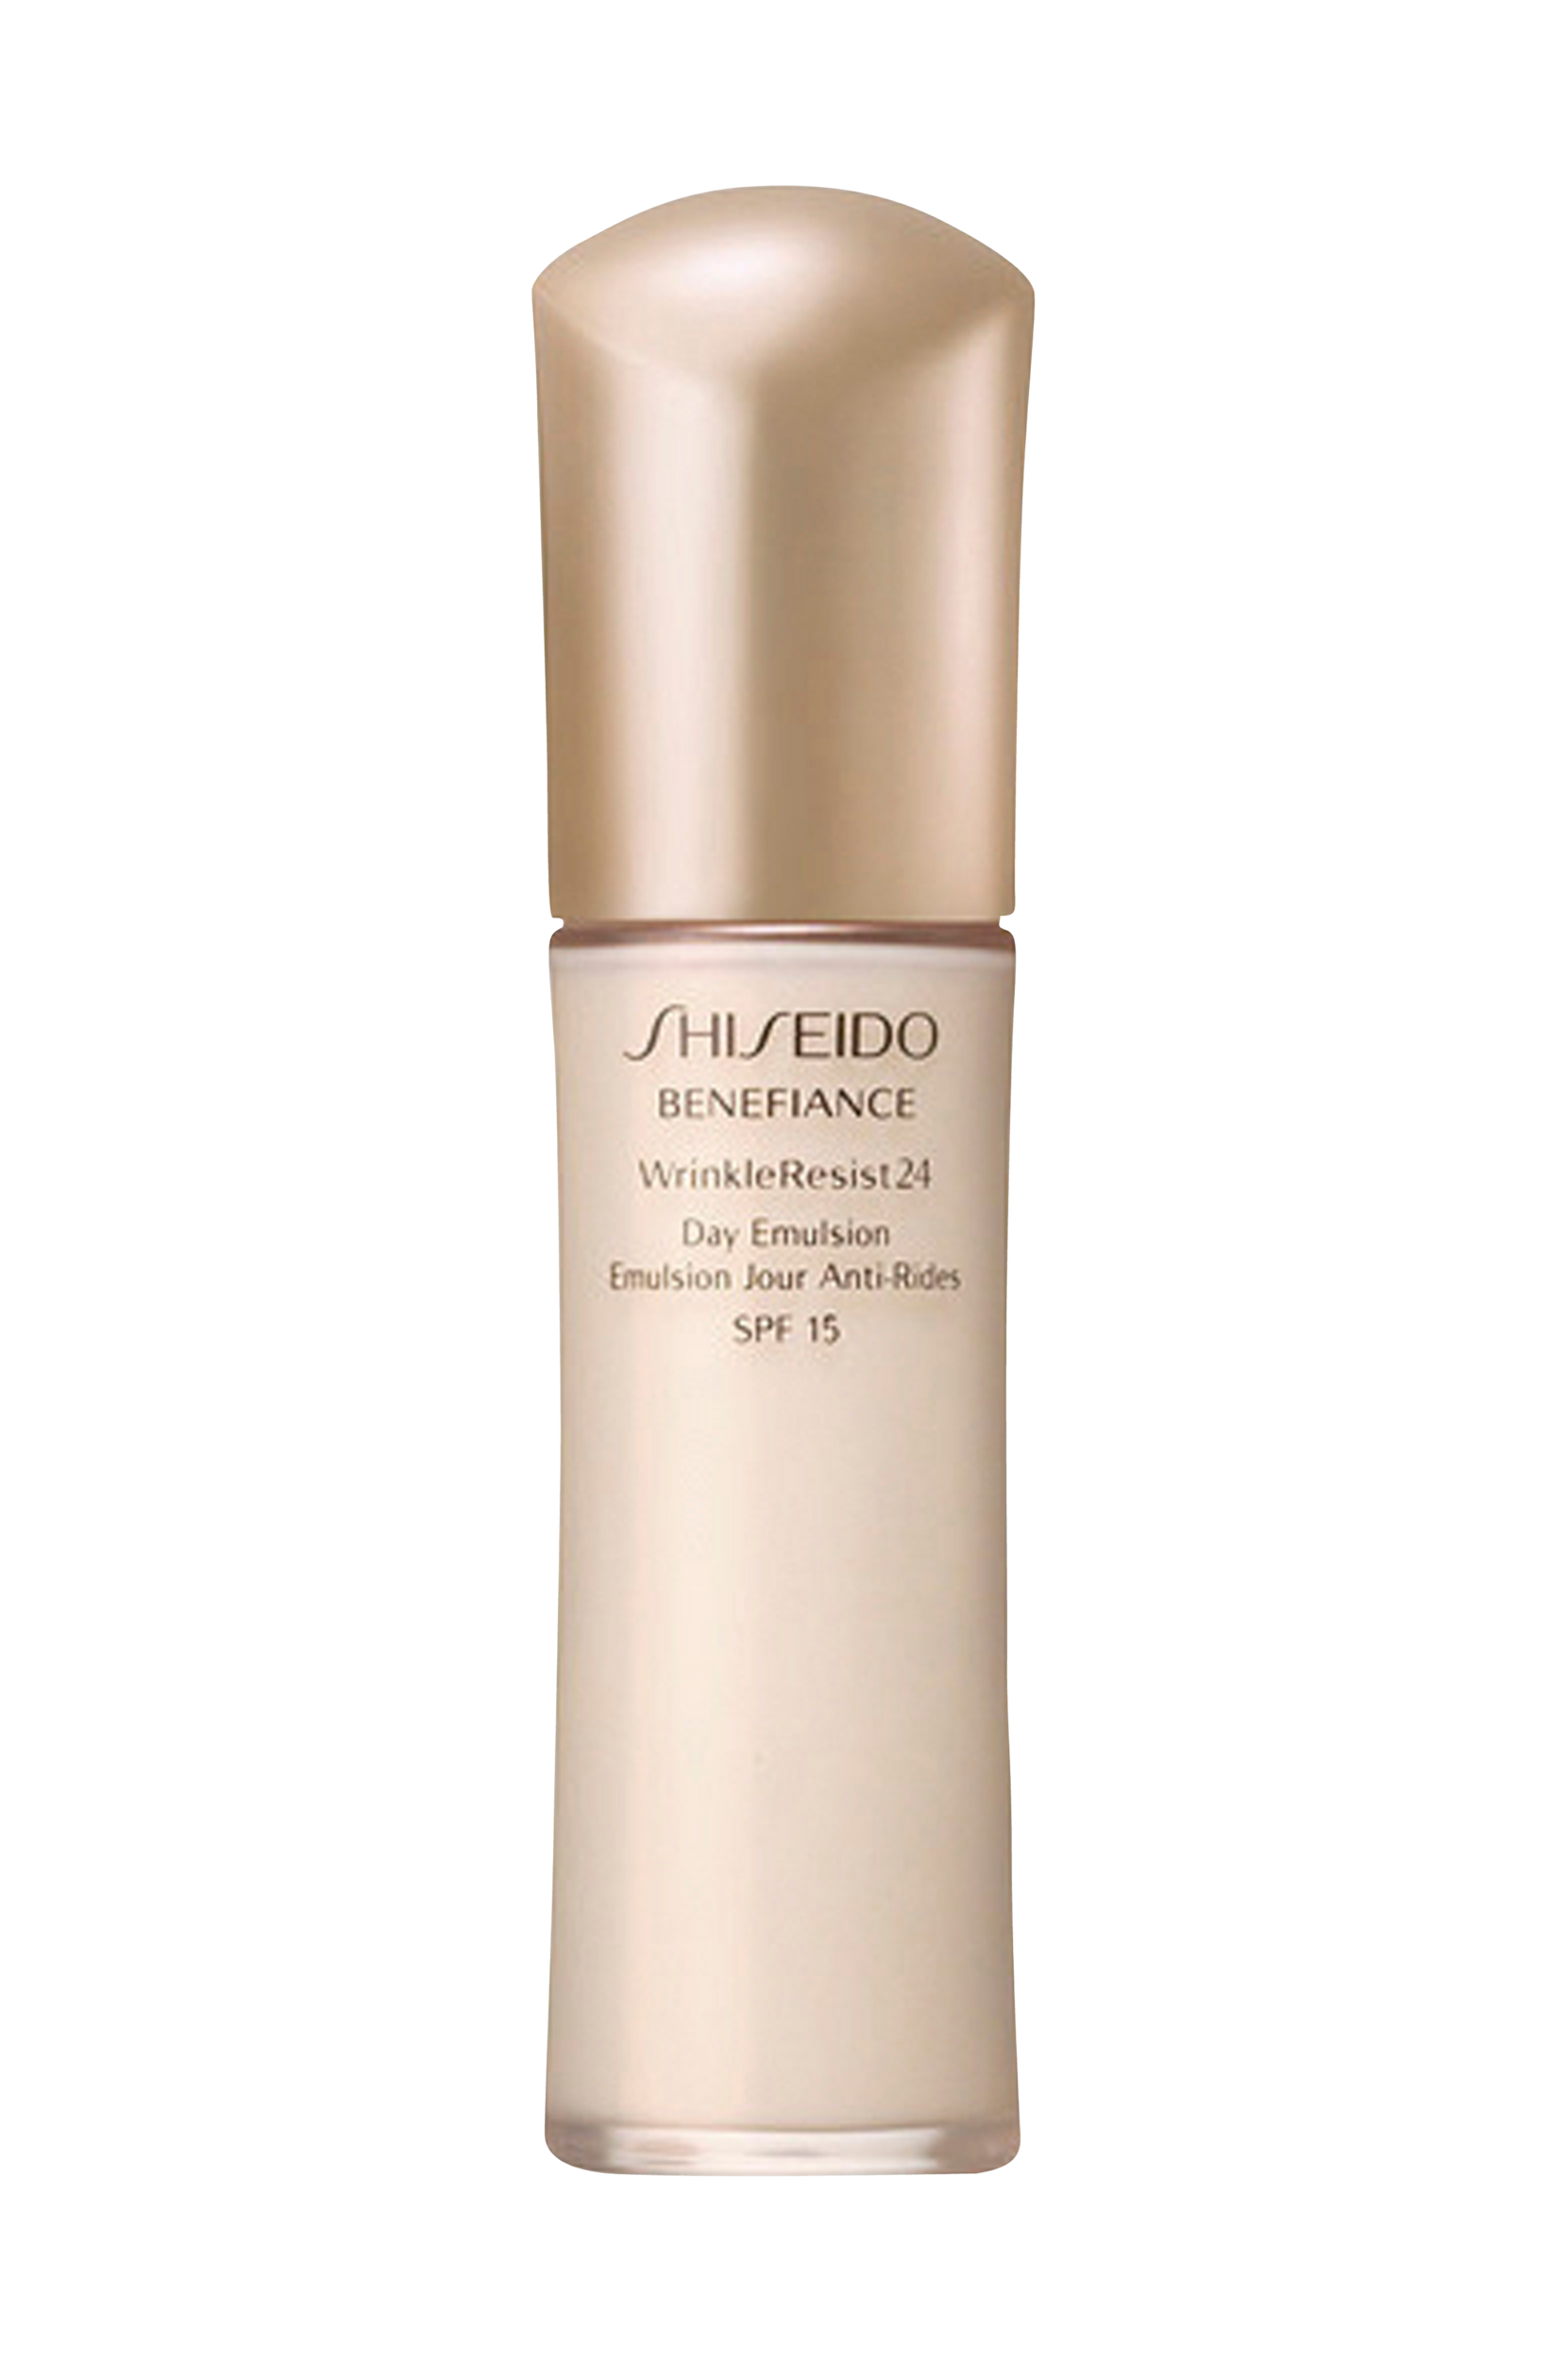 Benefiance WrinkleResist 24 Day Emulsion SPF 15